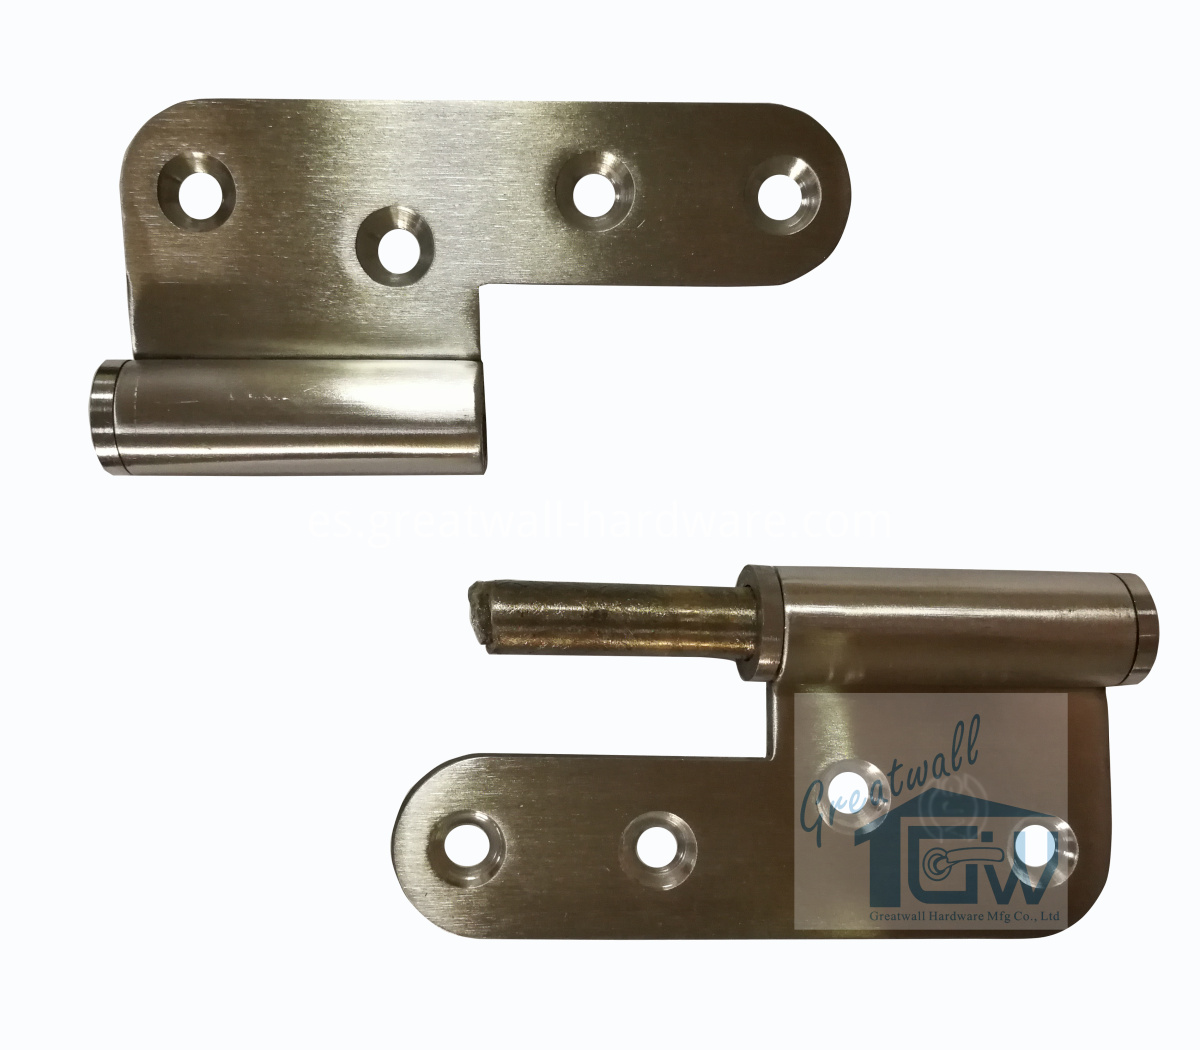 Stainless Steel 304 Take-apart Hinges